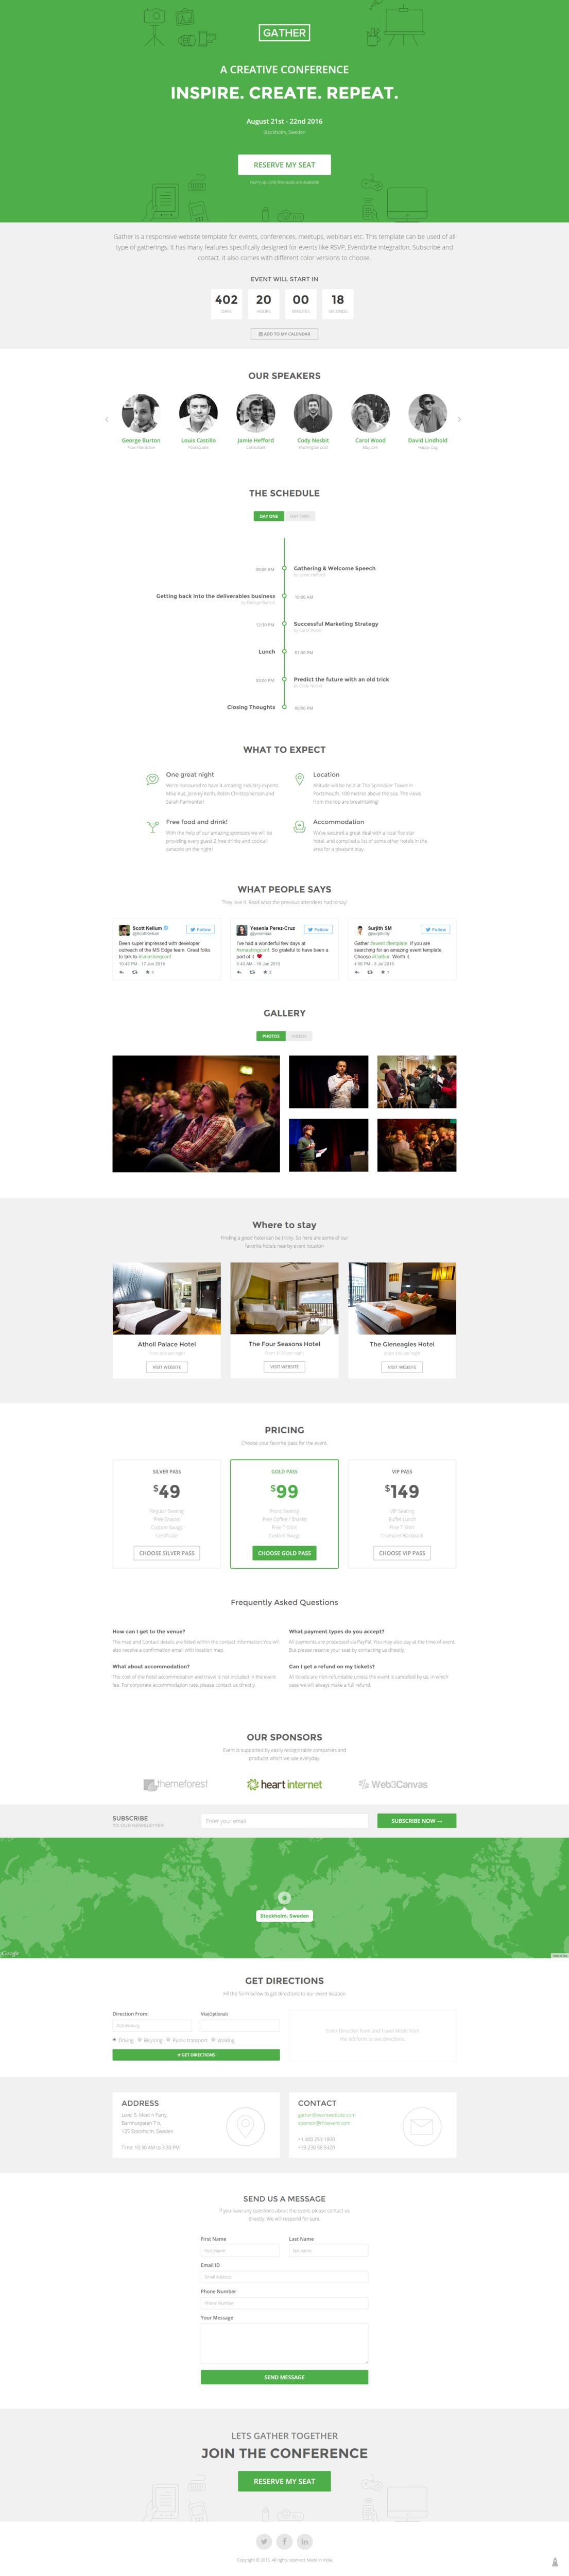 Landing Page PSD to HTML Conversion (Responsive, HTML5)  by surjithctly - 84714